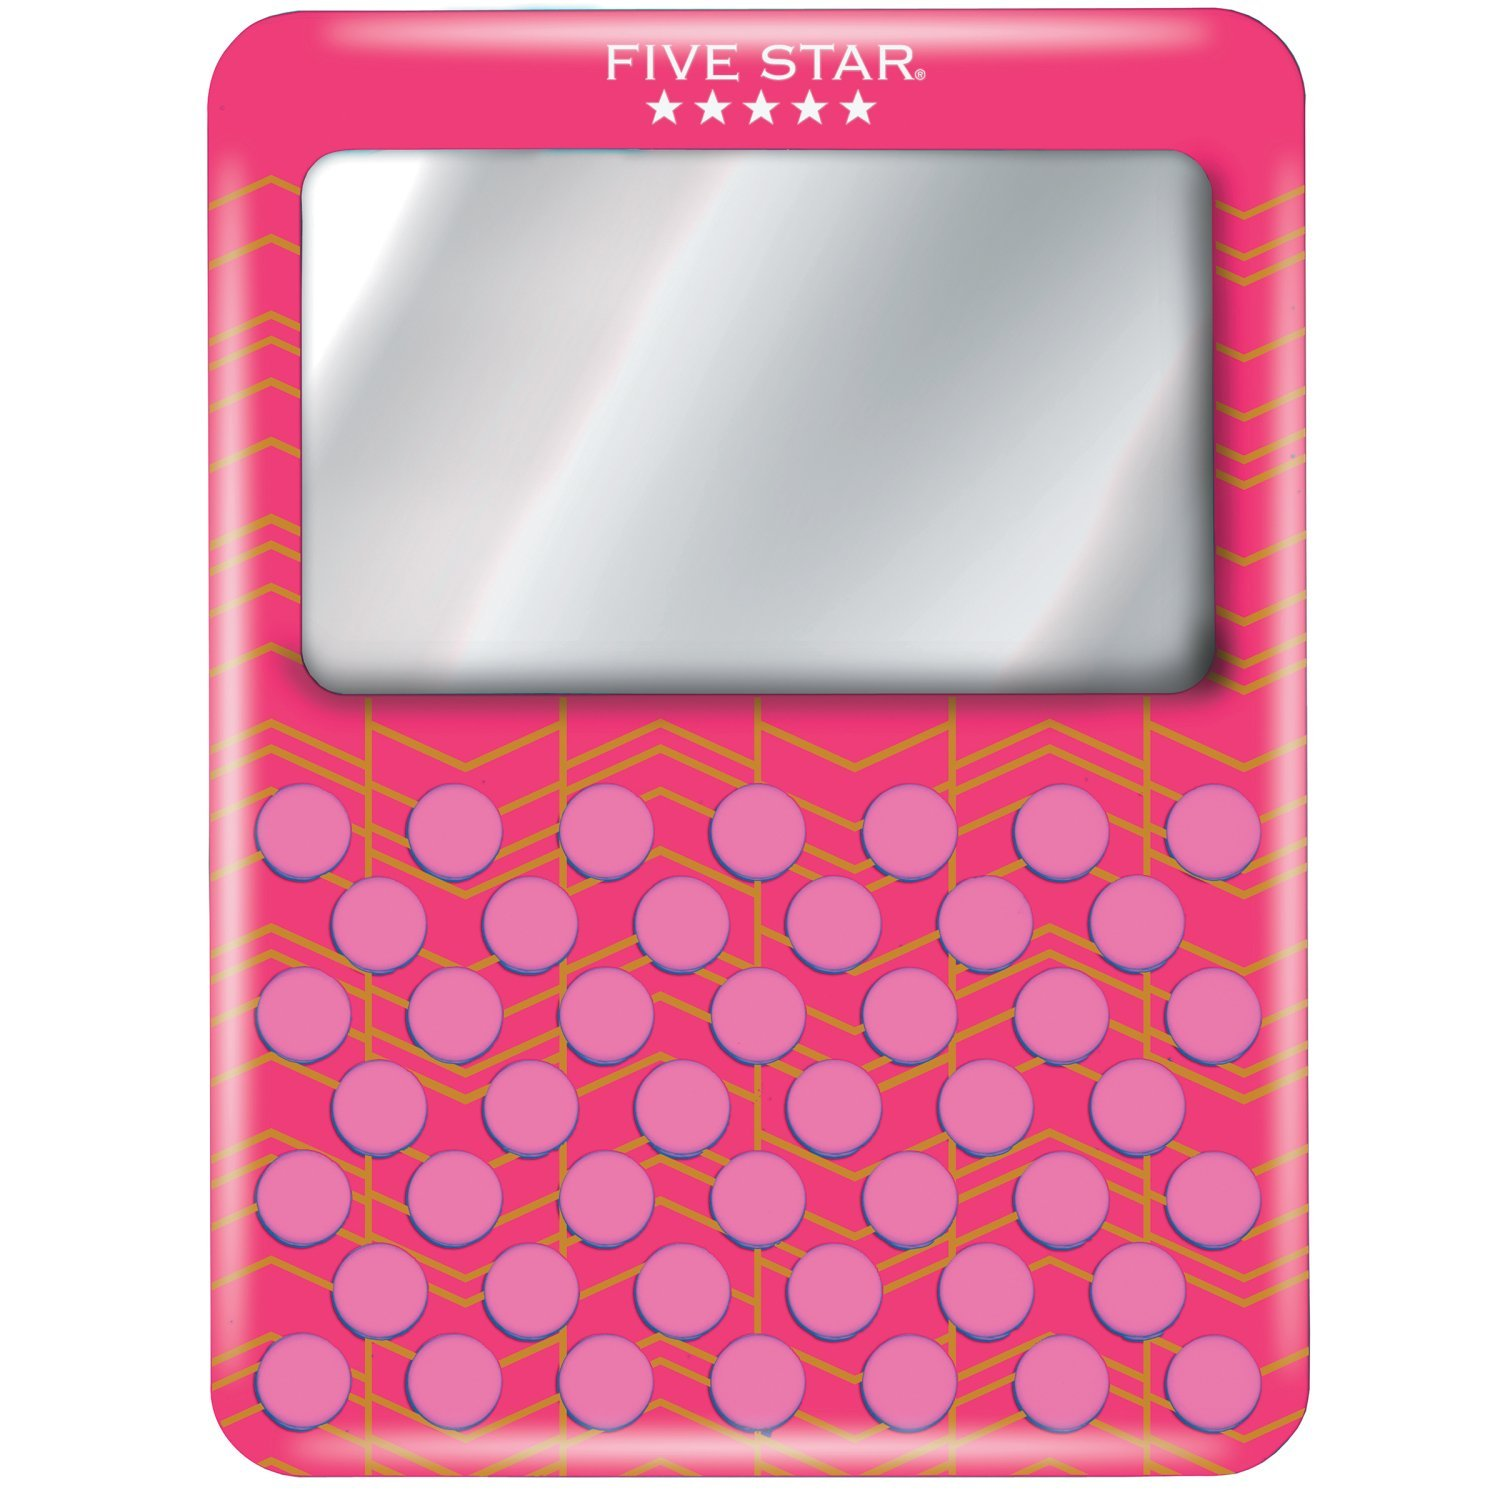 Five Star Locker Accessories, Magnetic Mirror with Push Pin Board, Color Will Vary (81248)